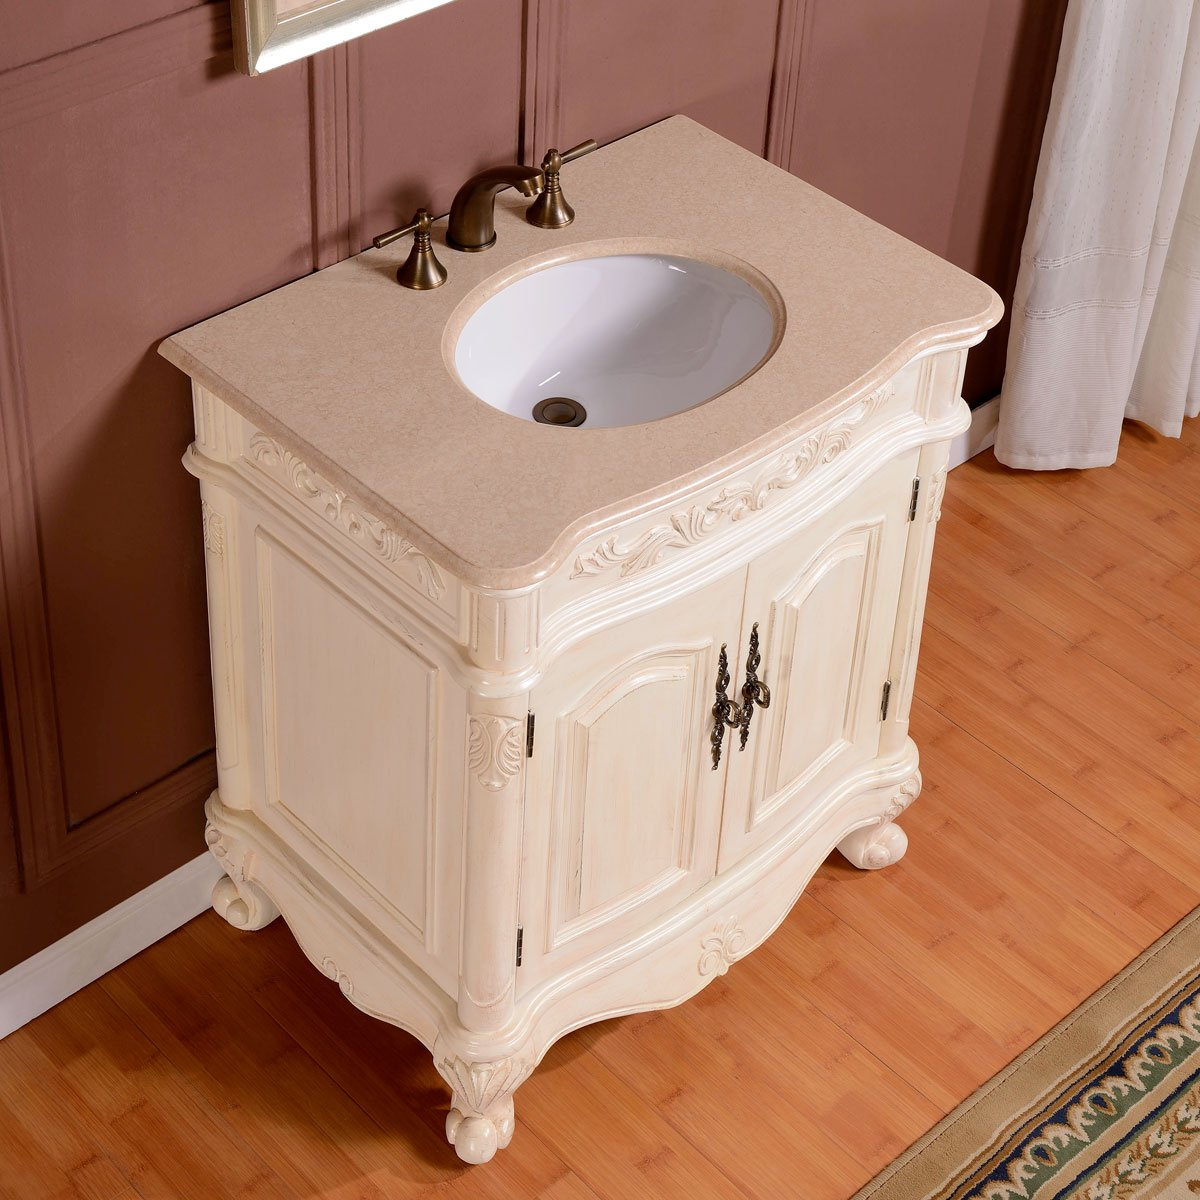 Silkroad Exclusive Inch Crema Marfil Marble Stone Top Bathroom - 33 inch bathroom vanity